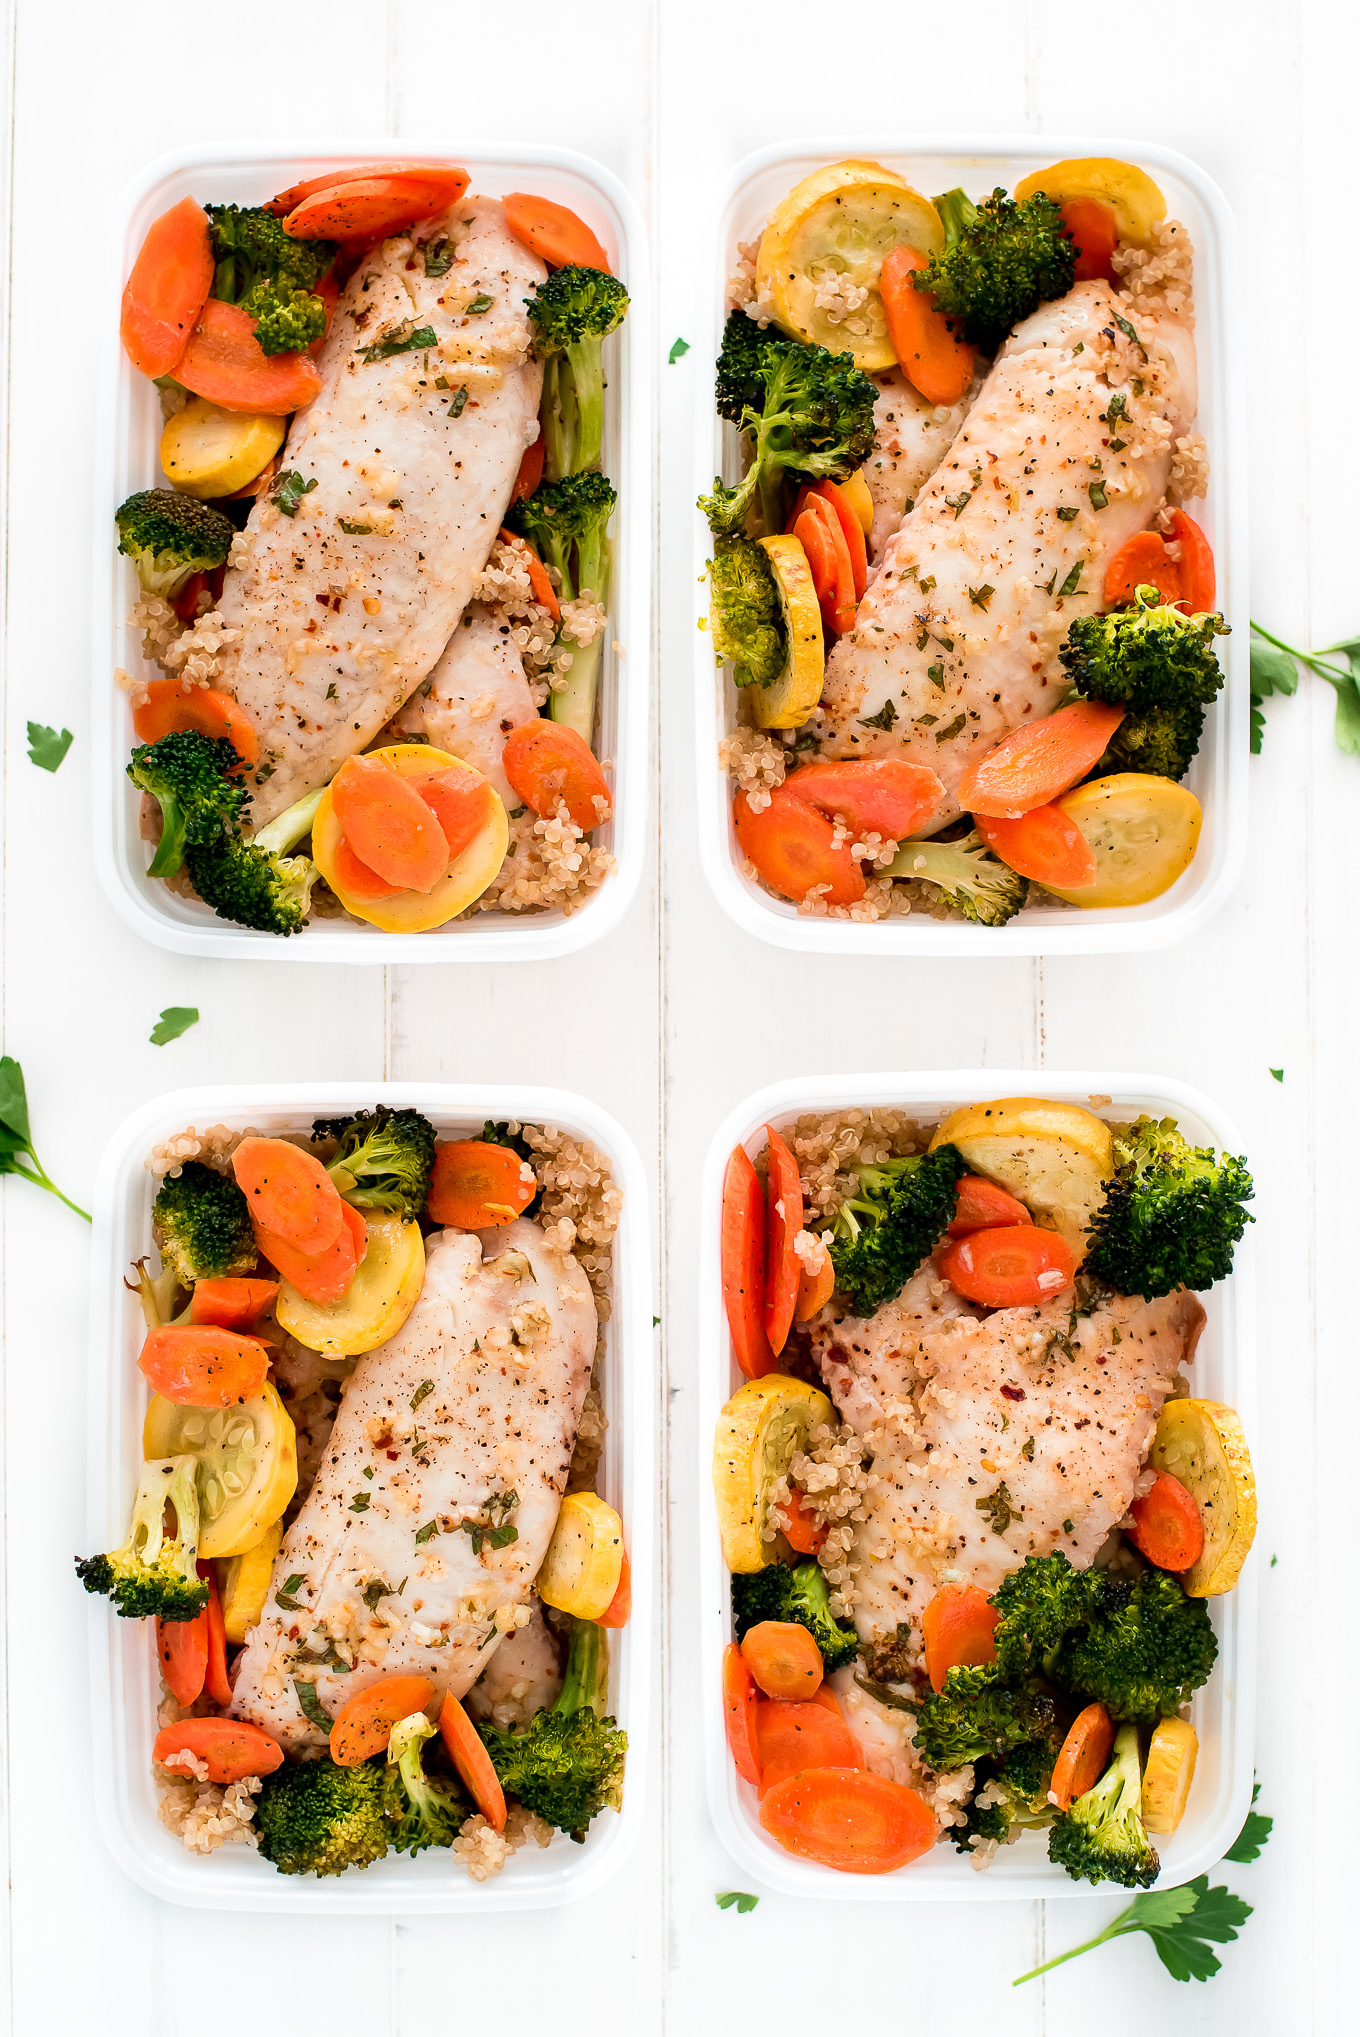 Sheet Pan Baked Tilapia and Roasted Vegetables divided into meal prep containers.